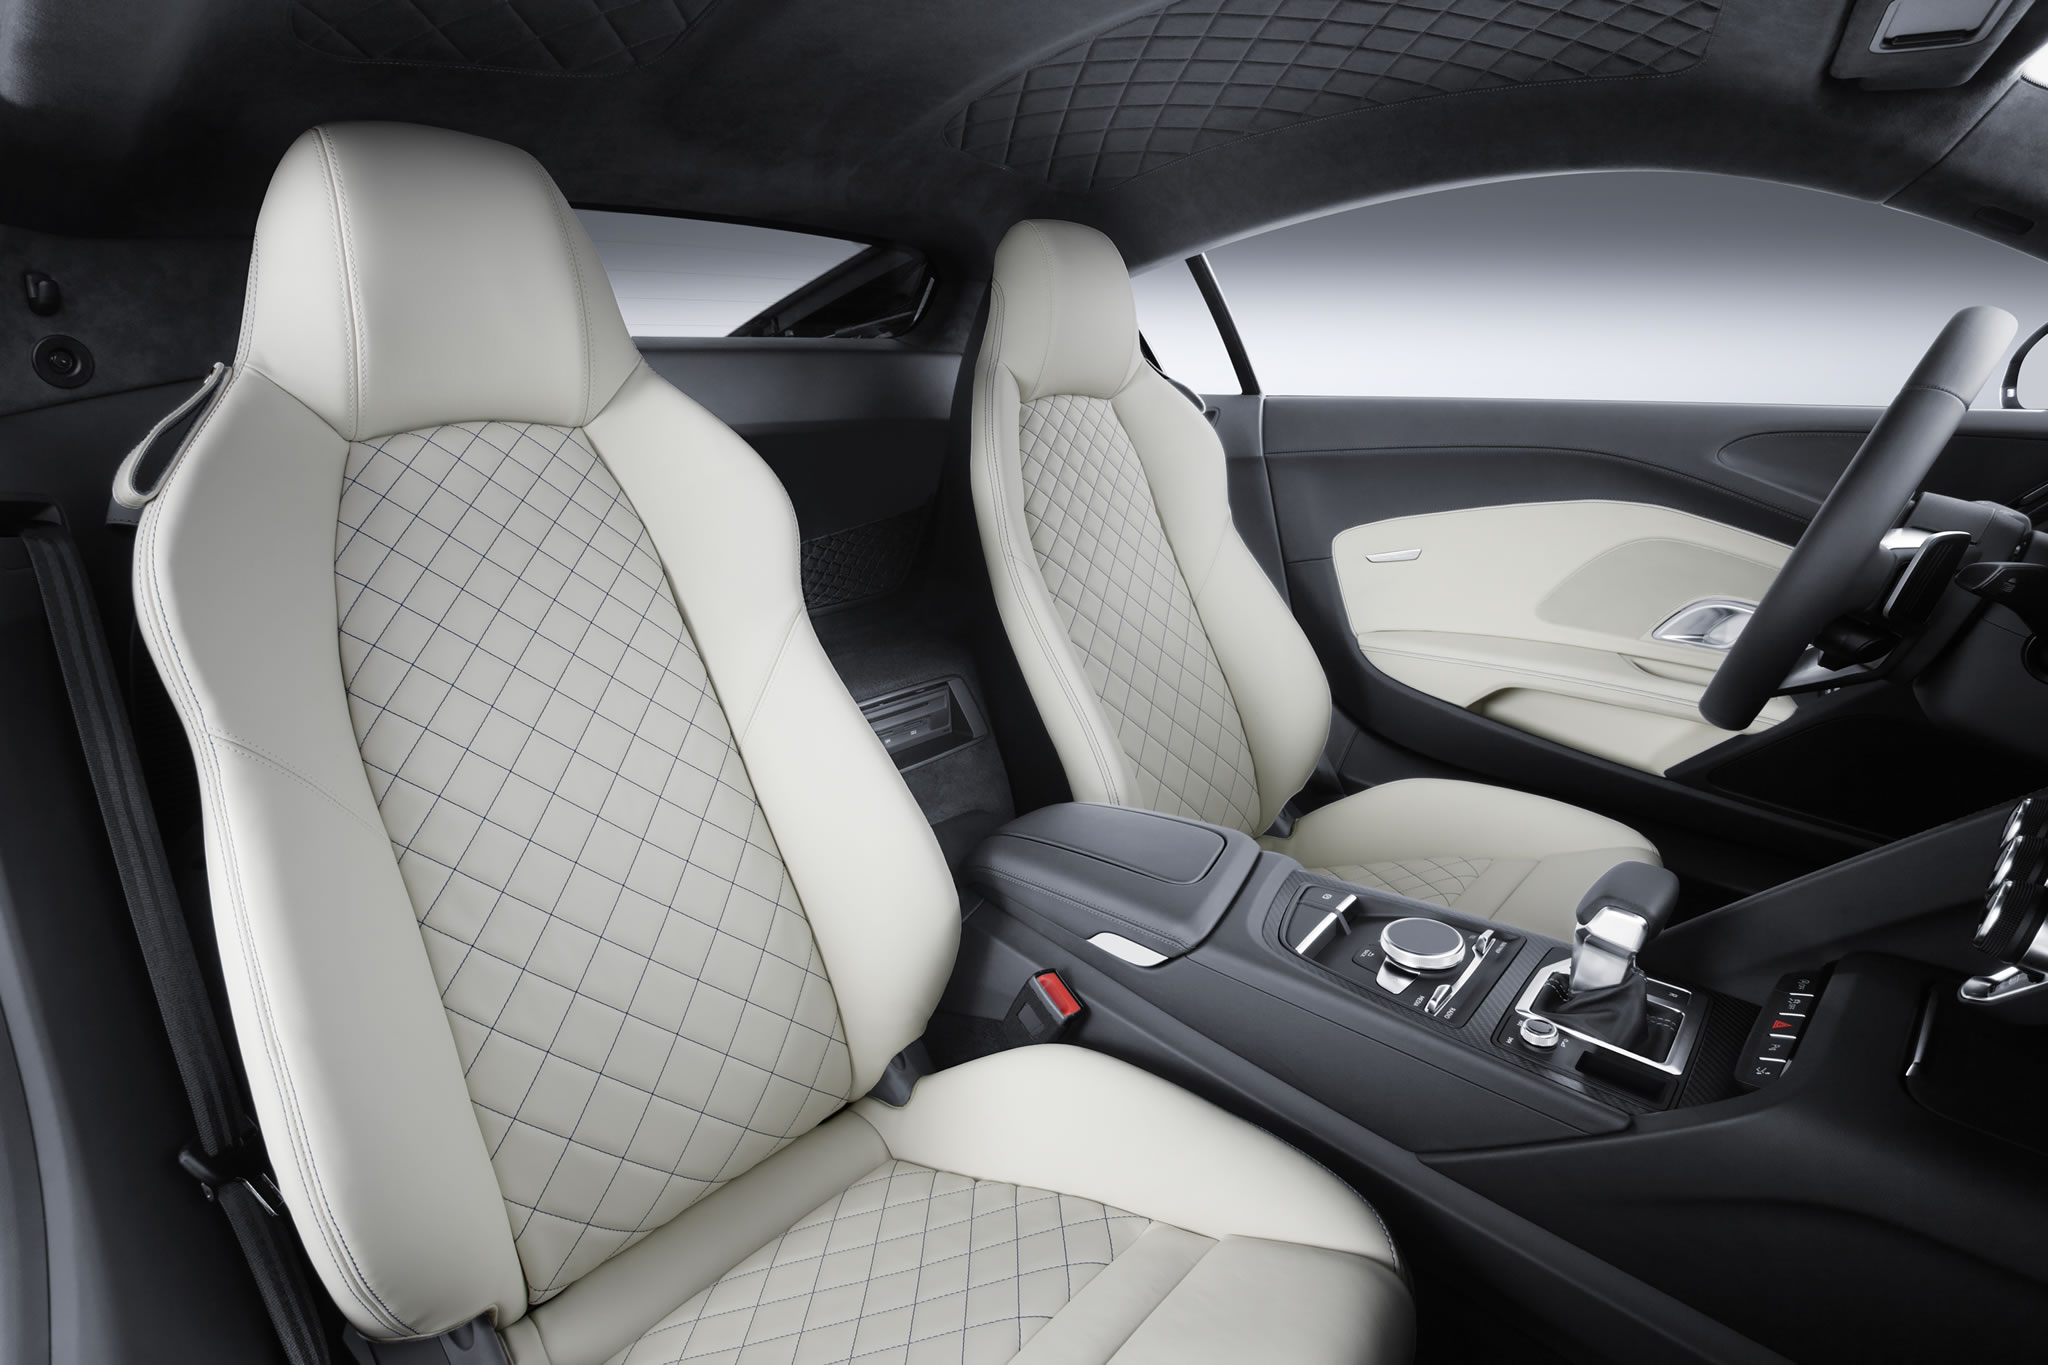 Tesla Car In Space Wallpaper 2016 Audi R8 V10 Interior Photo Front Seats Size 2048